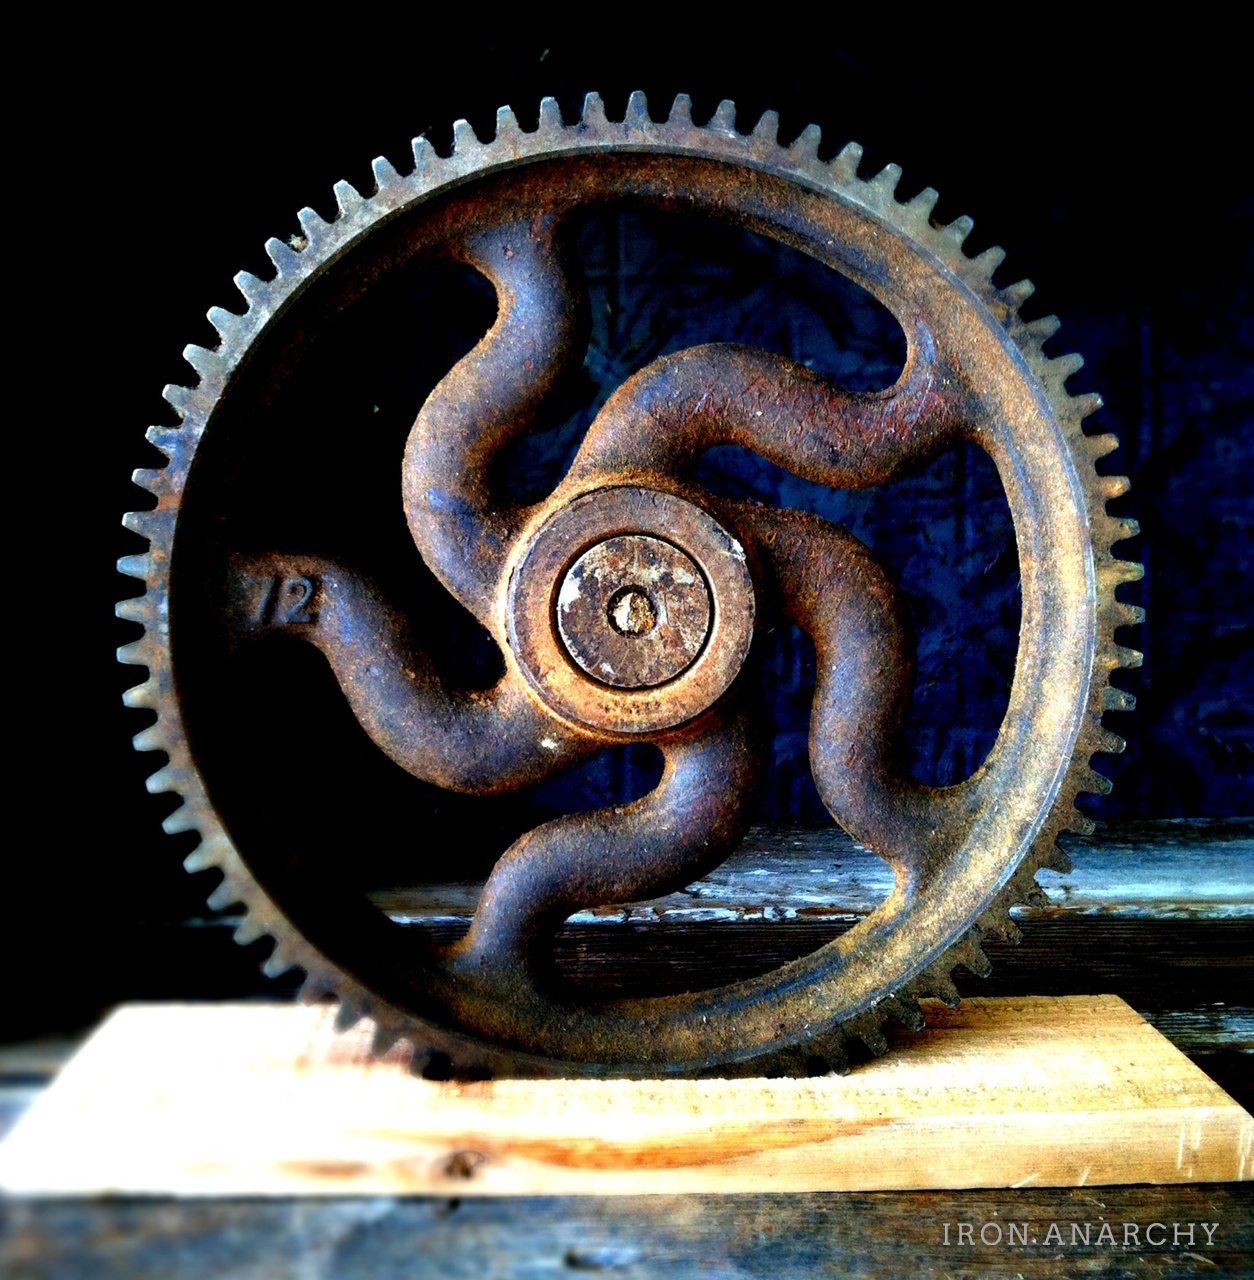 Cast Iron Wheels And Gears : S antique industrial cast iron gear sculptures